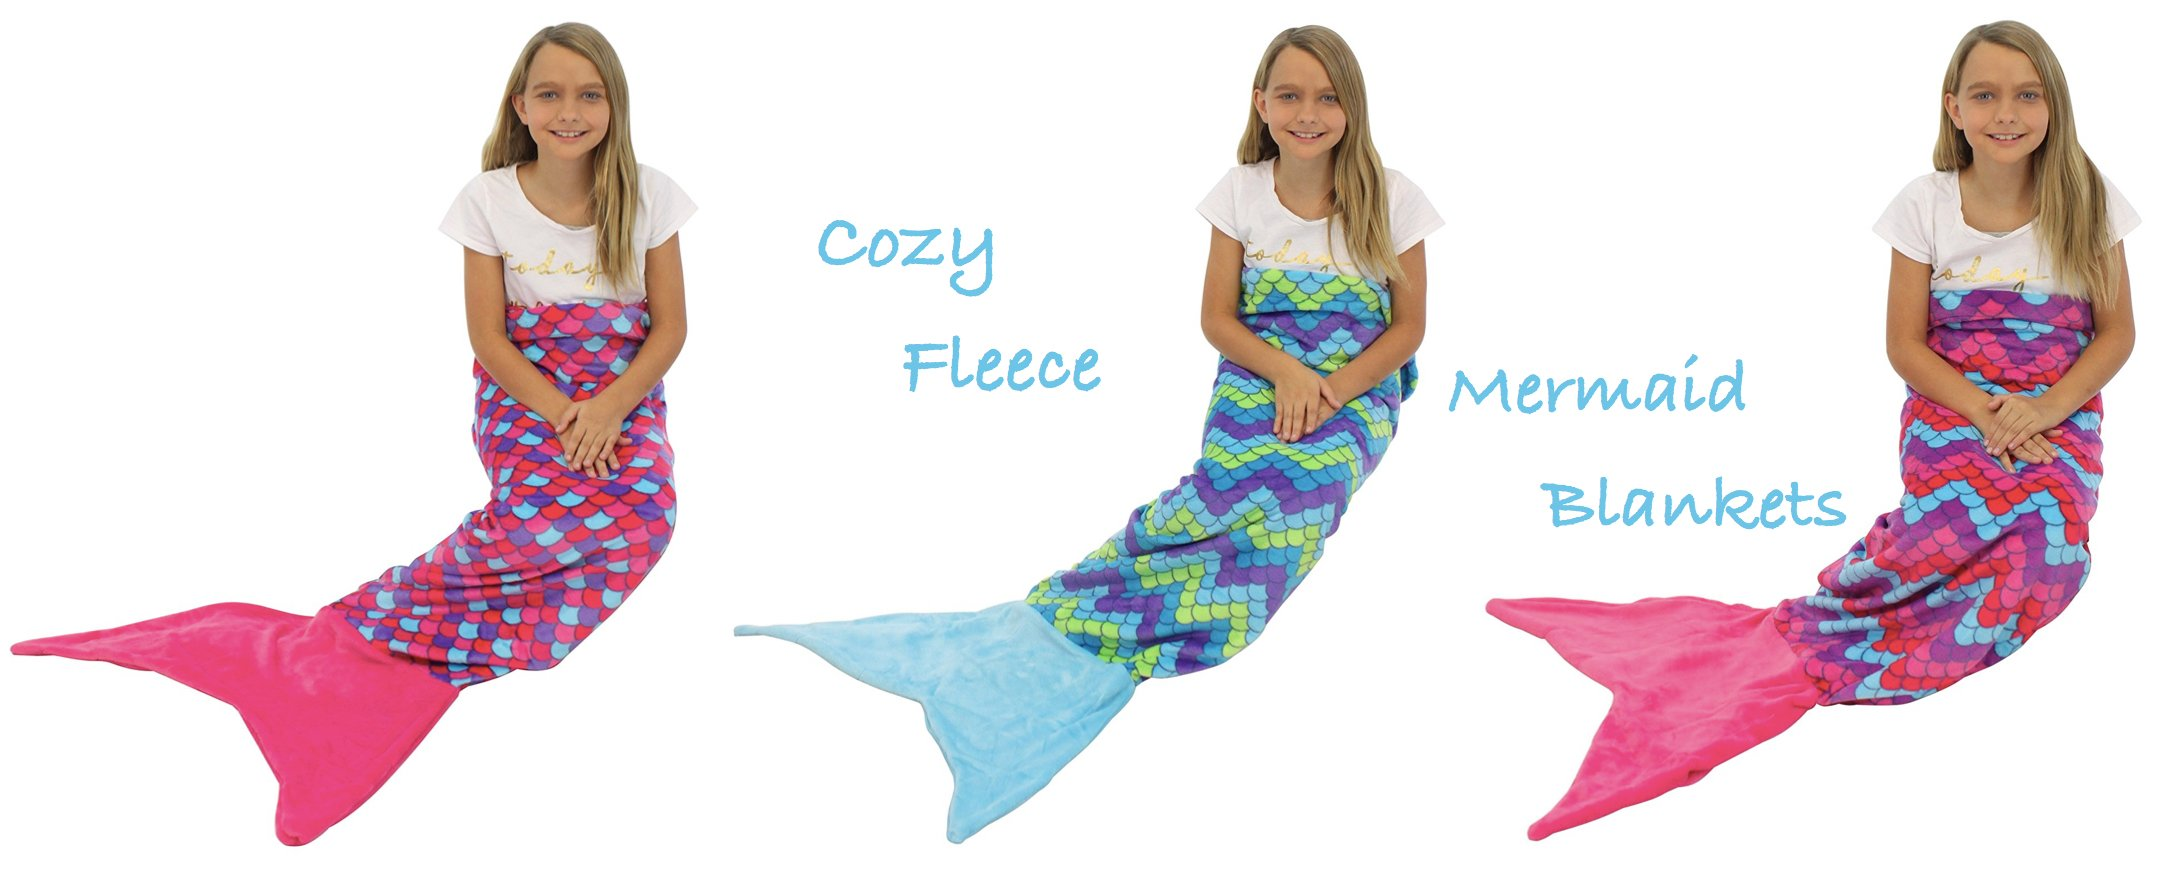 Cozy Fleece Mermaid Blankets